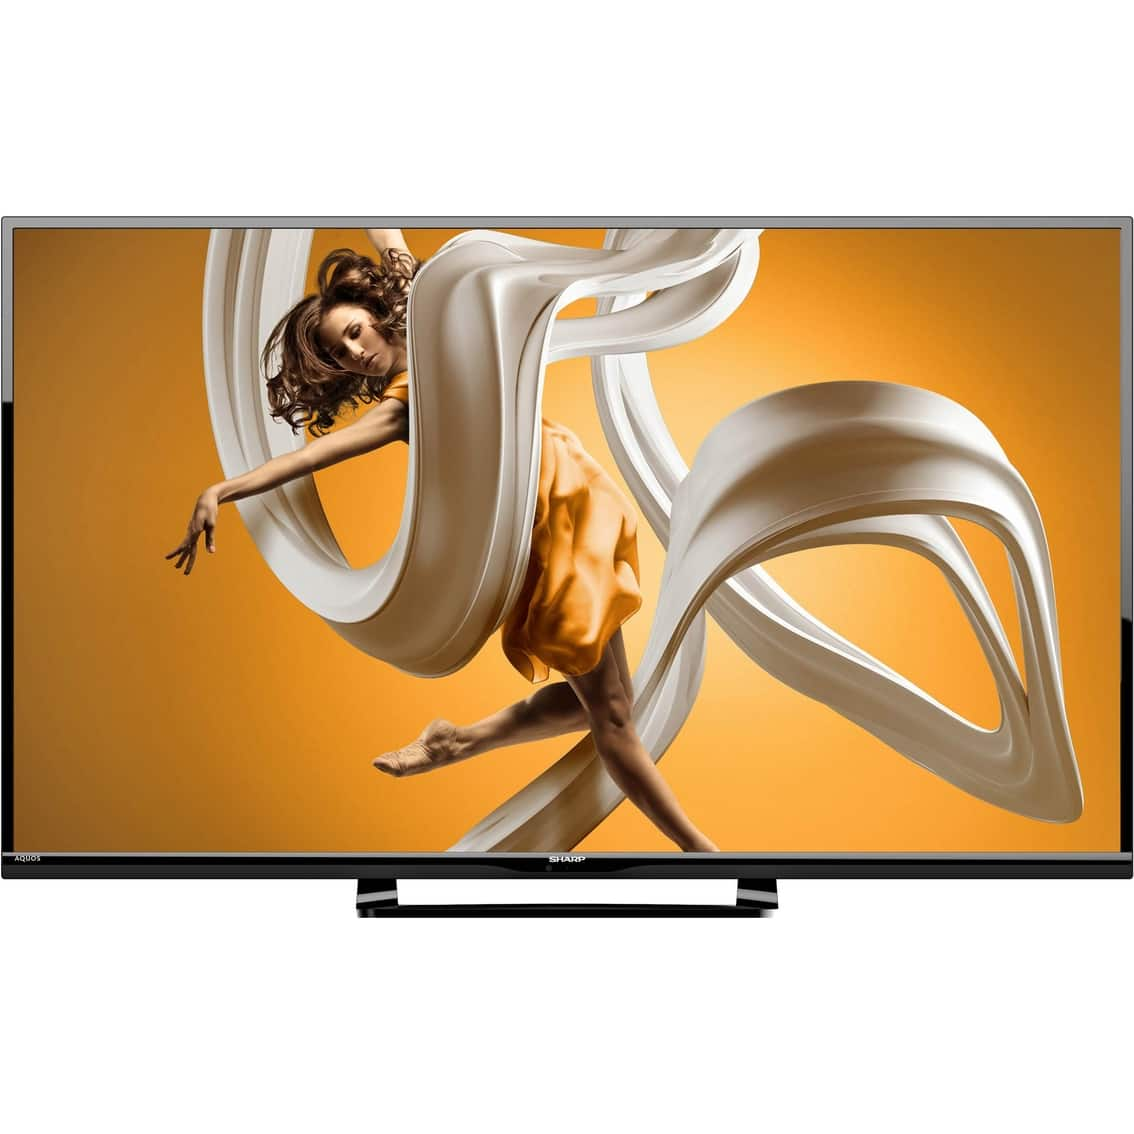 Military Only AAFES Sharp LC65LE645U 65 in. LED 1080p 120Hz Smart TV $594.15 Shipped